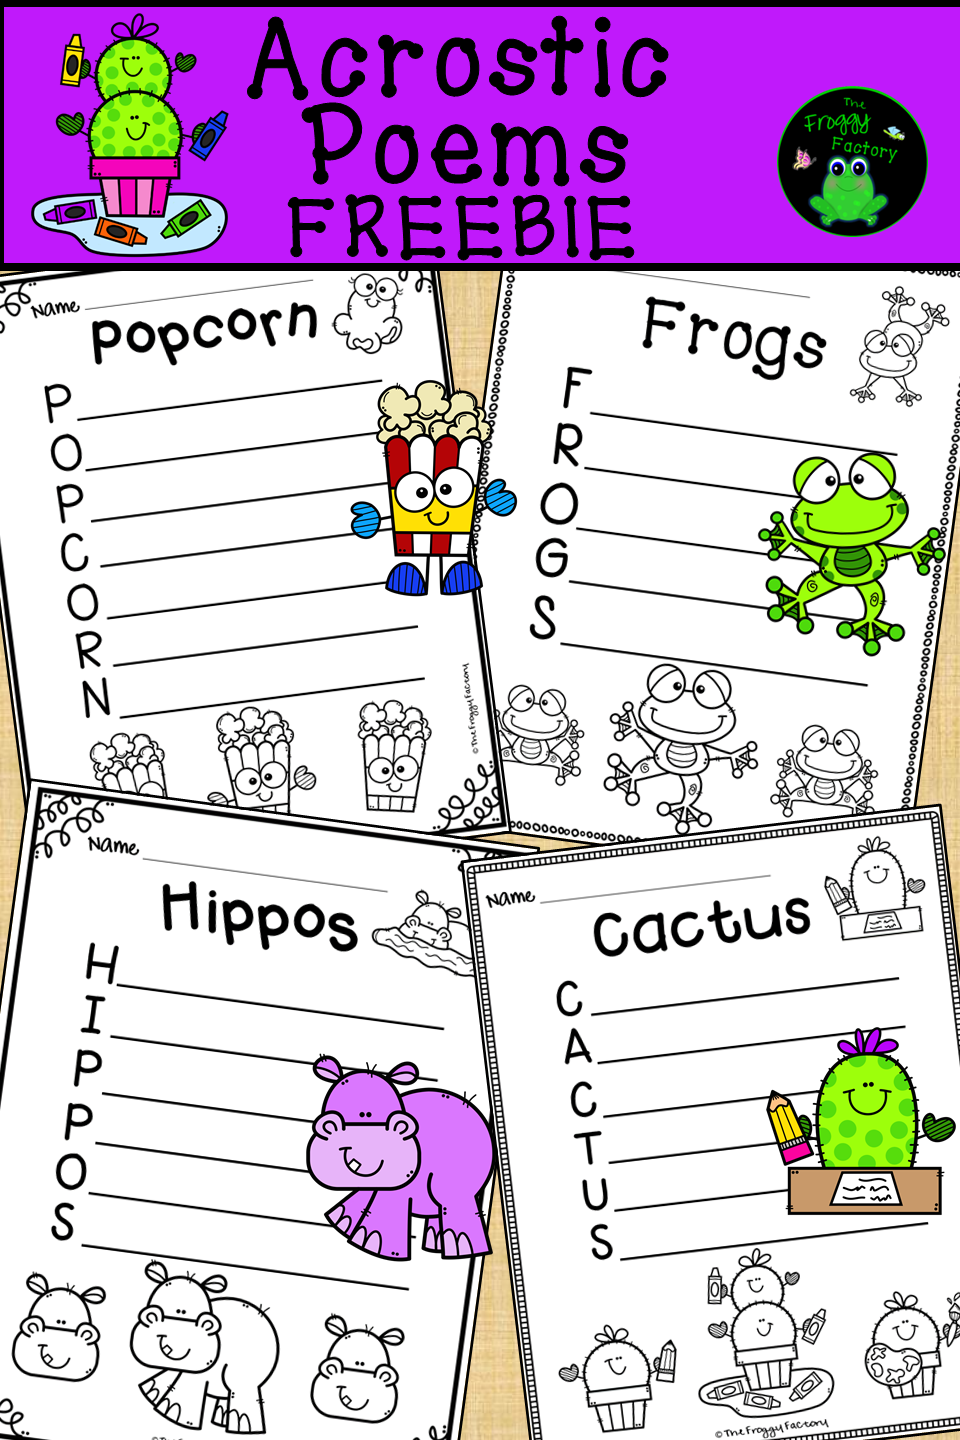 Are You Looking For A Fun Poetry Activity To Use Any Time Of The Year